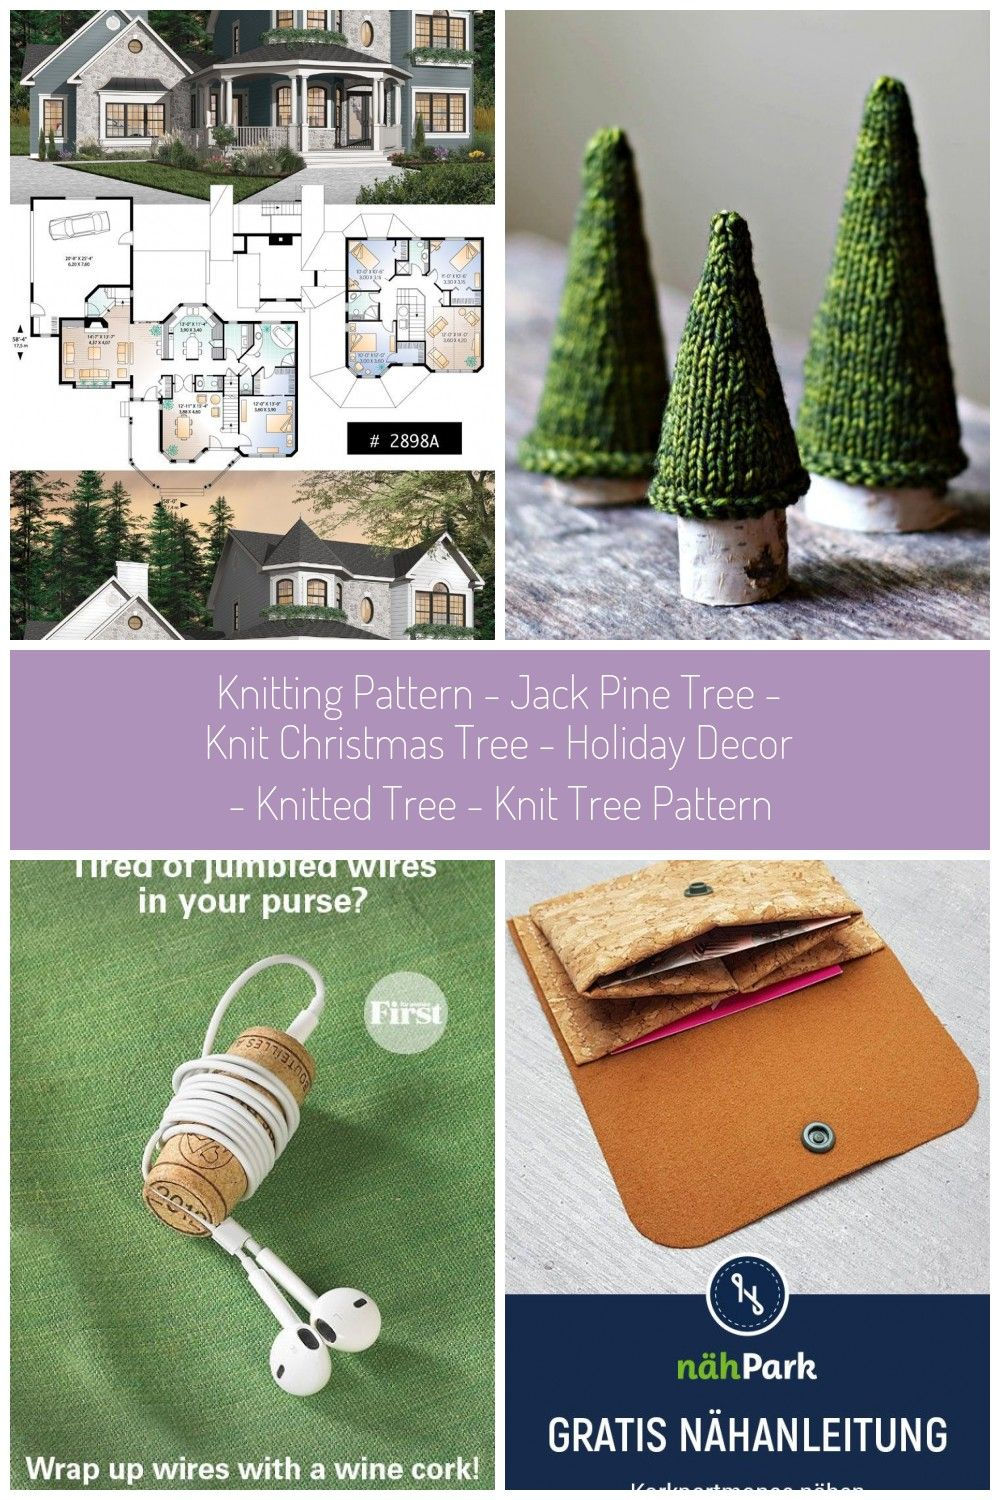 Floor 2 Christmas 2020 Release Date 4 to 6 bedrooms Victorian two story home plan large bonus space